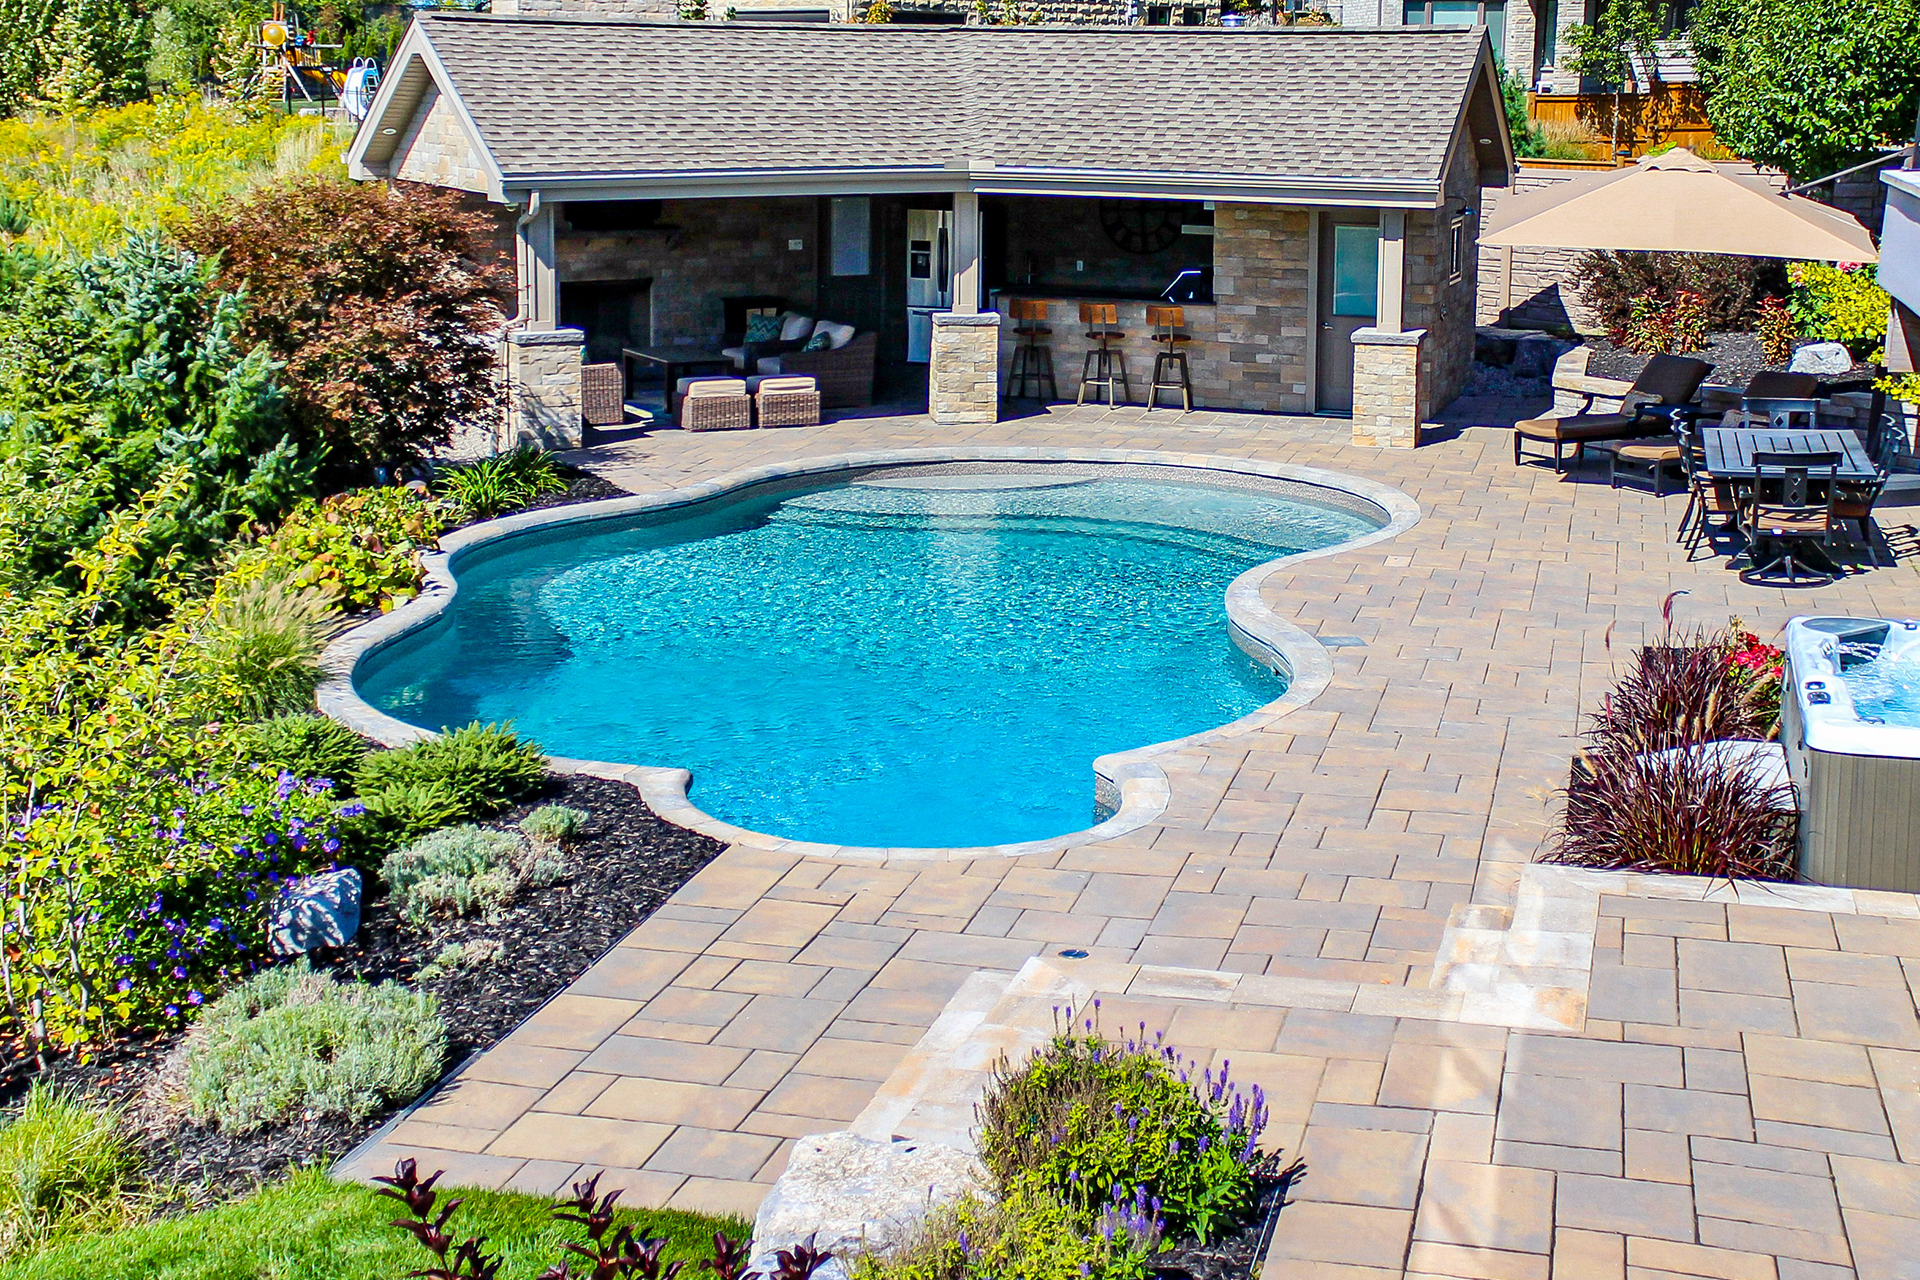 Image of a beautiful backyard pool and outdoor living space